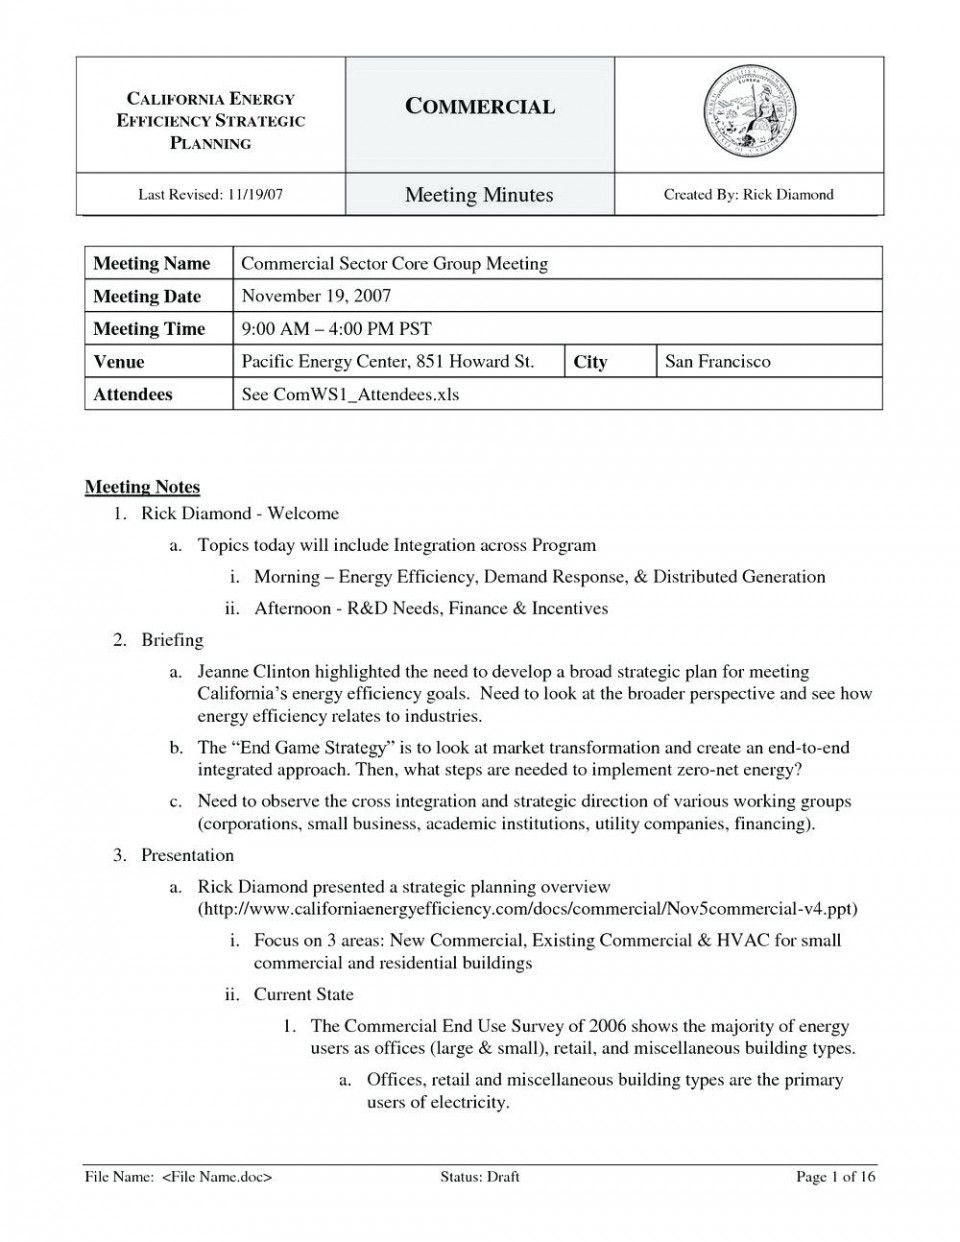 018 Meeting Minutes Template Free Board Download Corporate With Regard To Corporate Minutes Templ Meeting Notes Template Meeting Minutes Template Meeting Notes